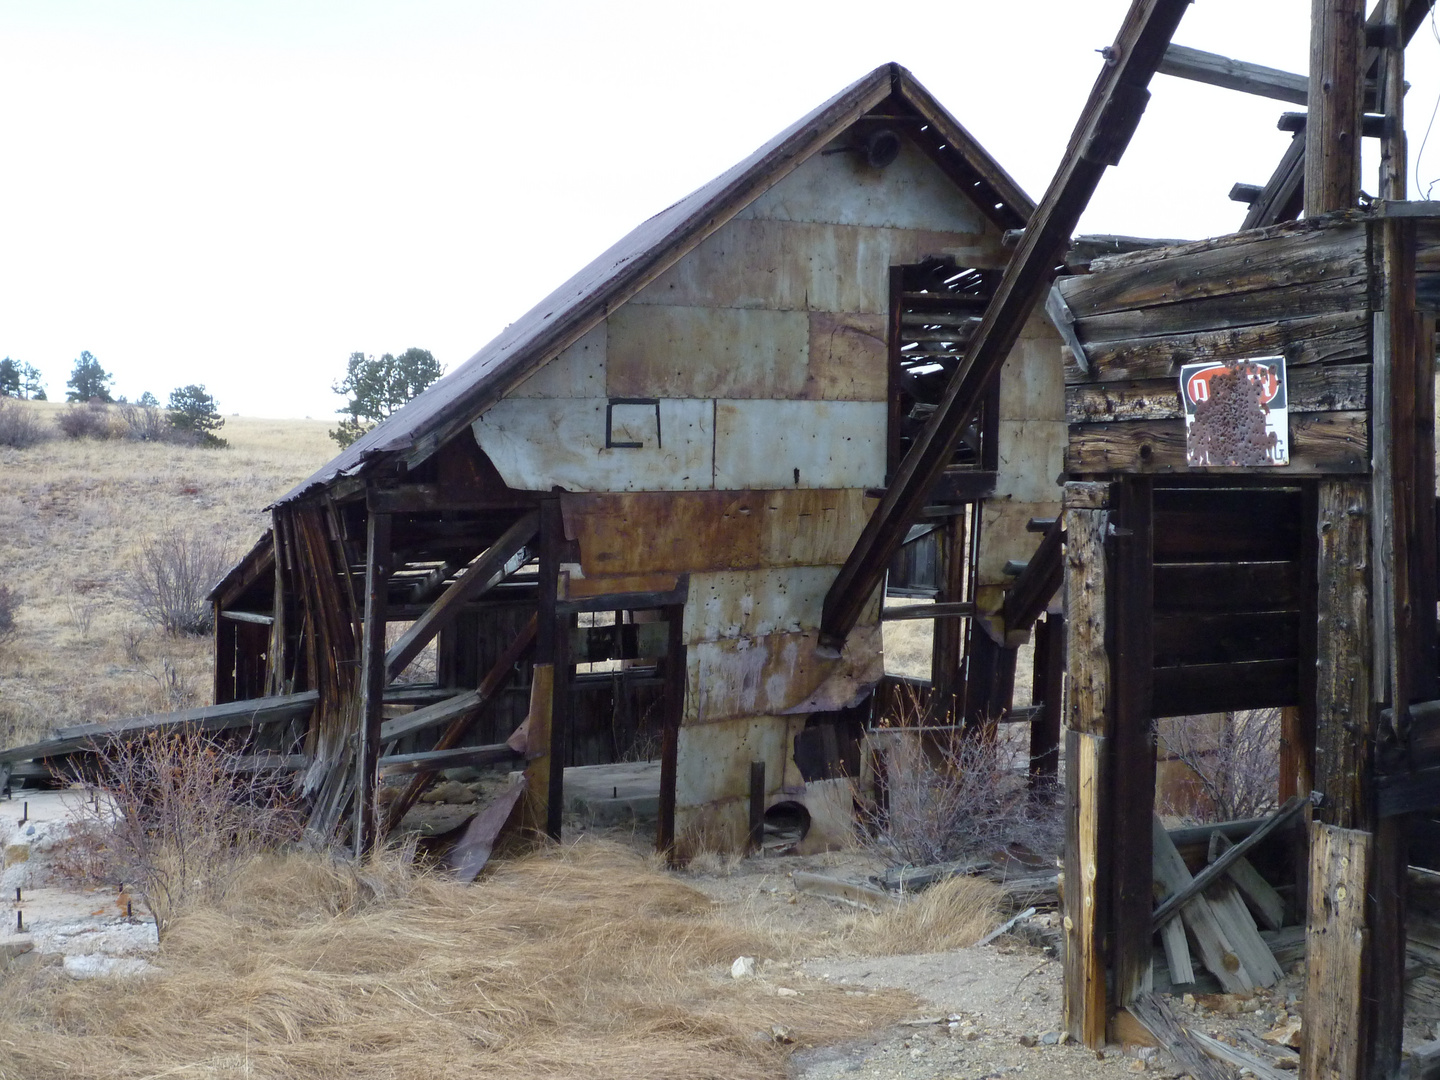 Wild West 1880 - Abandoned Gold mine near Central City (Comstock mine)